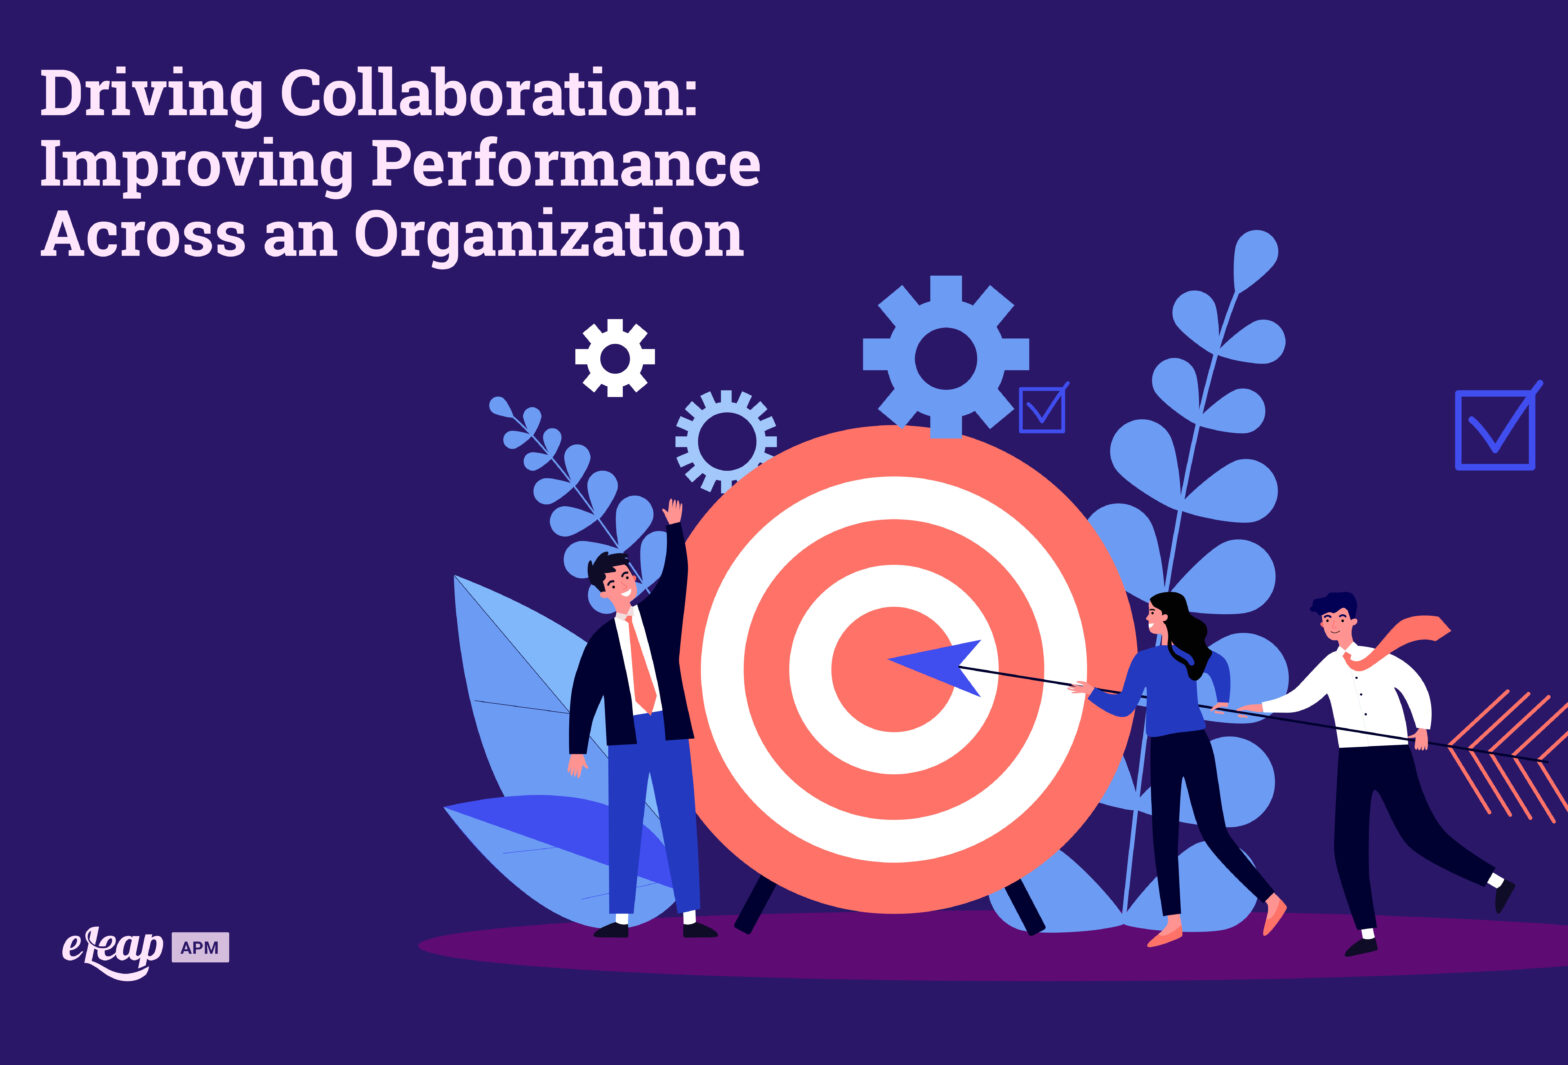 Driving Collaboration: Improving Performance Across an Organization